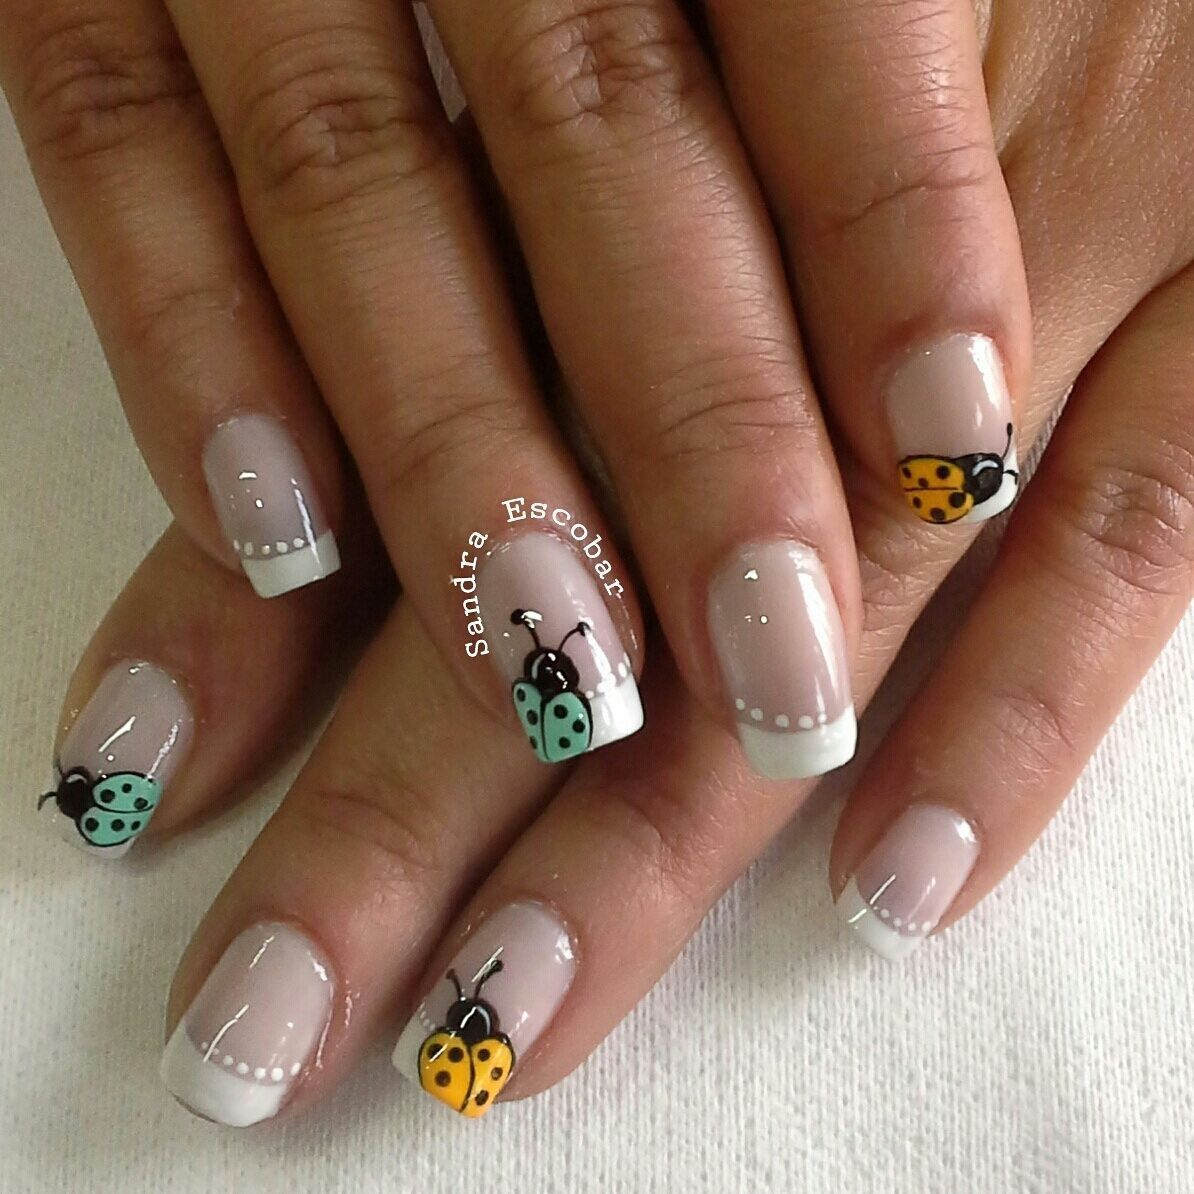 Pin by kim goodson on nails pinterest manicure spring nails and